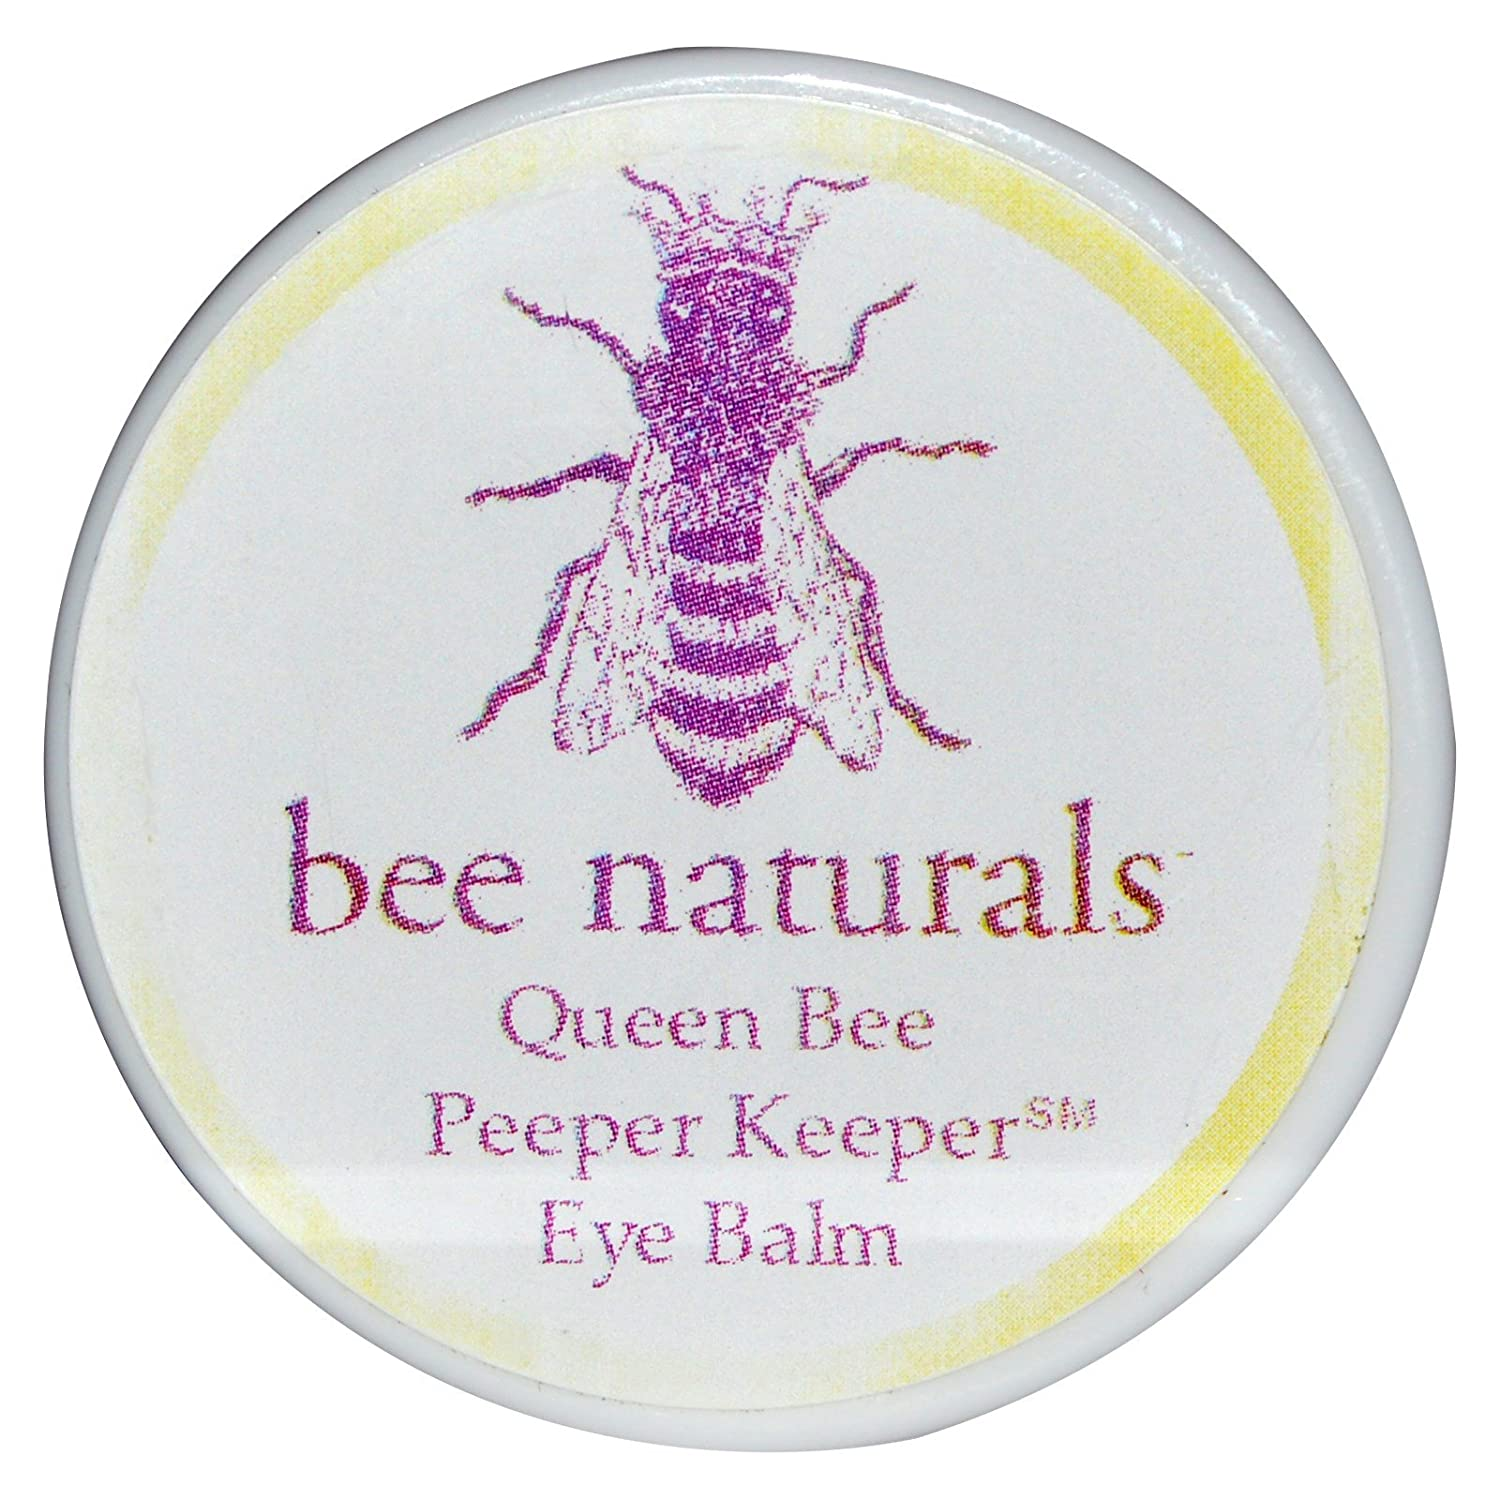 Bee Naturals Queen Bee Peeper Keeper Eye Balm - Reduces Eye Wrinkles and Moisturizes Skin - Vitamin E and 10 Different Natural Nutrient Oils - 0.8 Oz